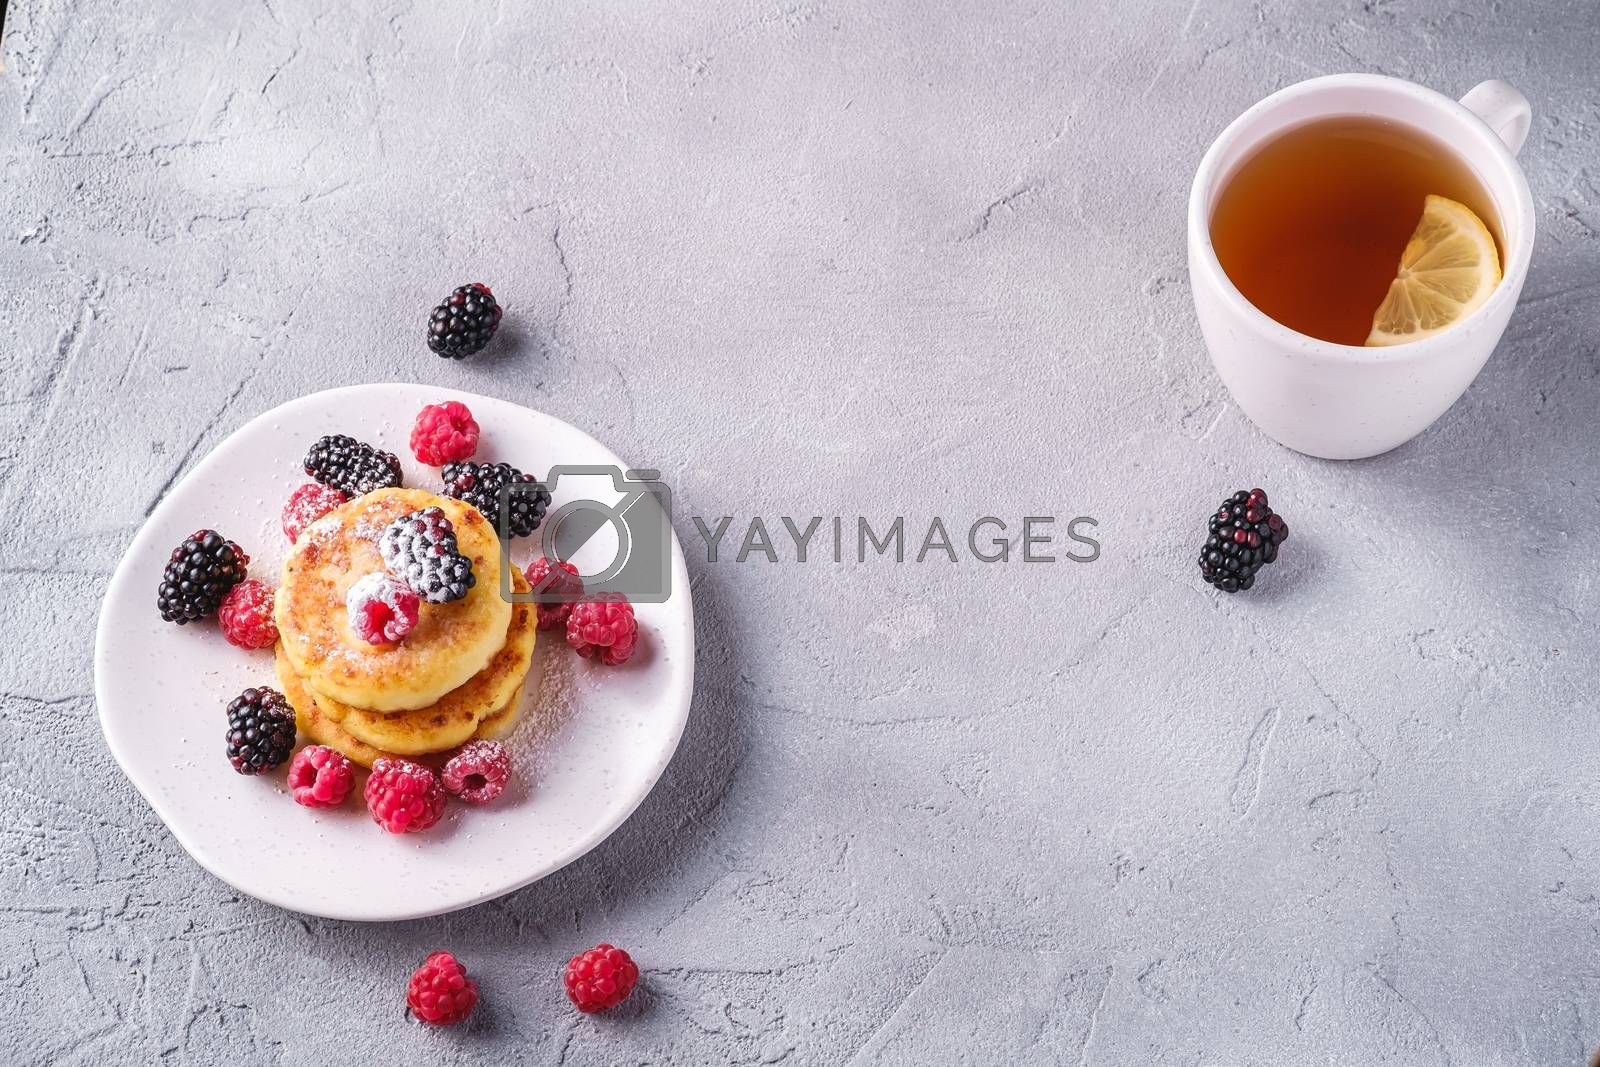 Cottage cheese pancakes and powdered sugar, curd fritters dessert with raspberry and blackberry berries in plate near to hot tea cup with lemon slice on stone concrete background, angle view copy space